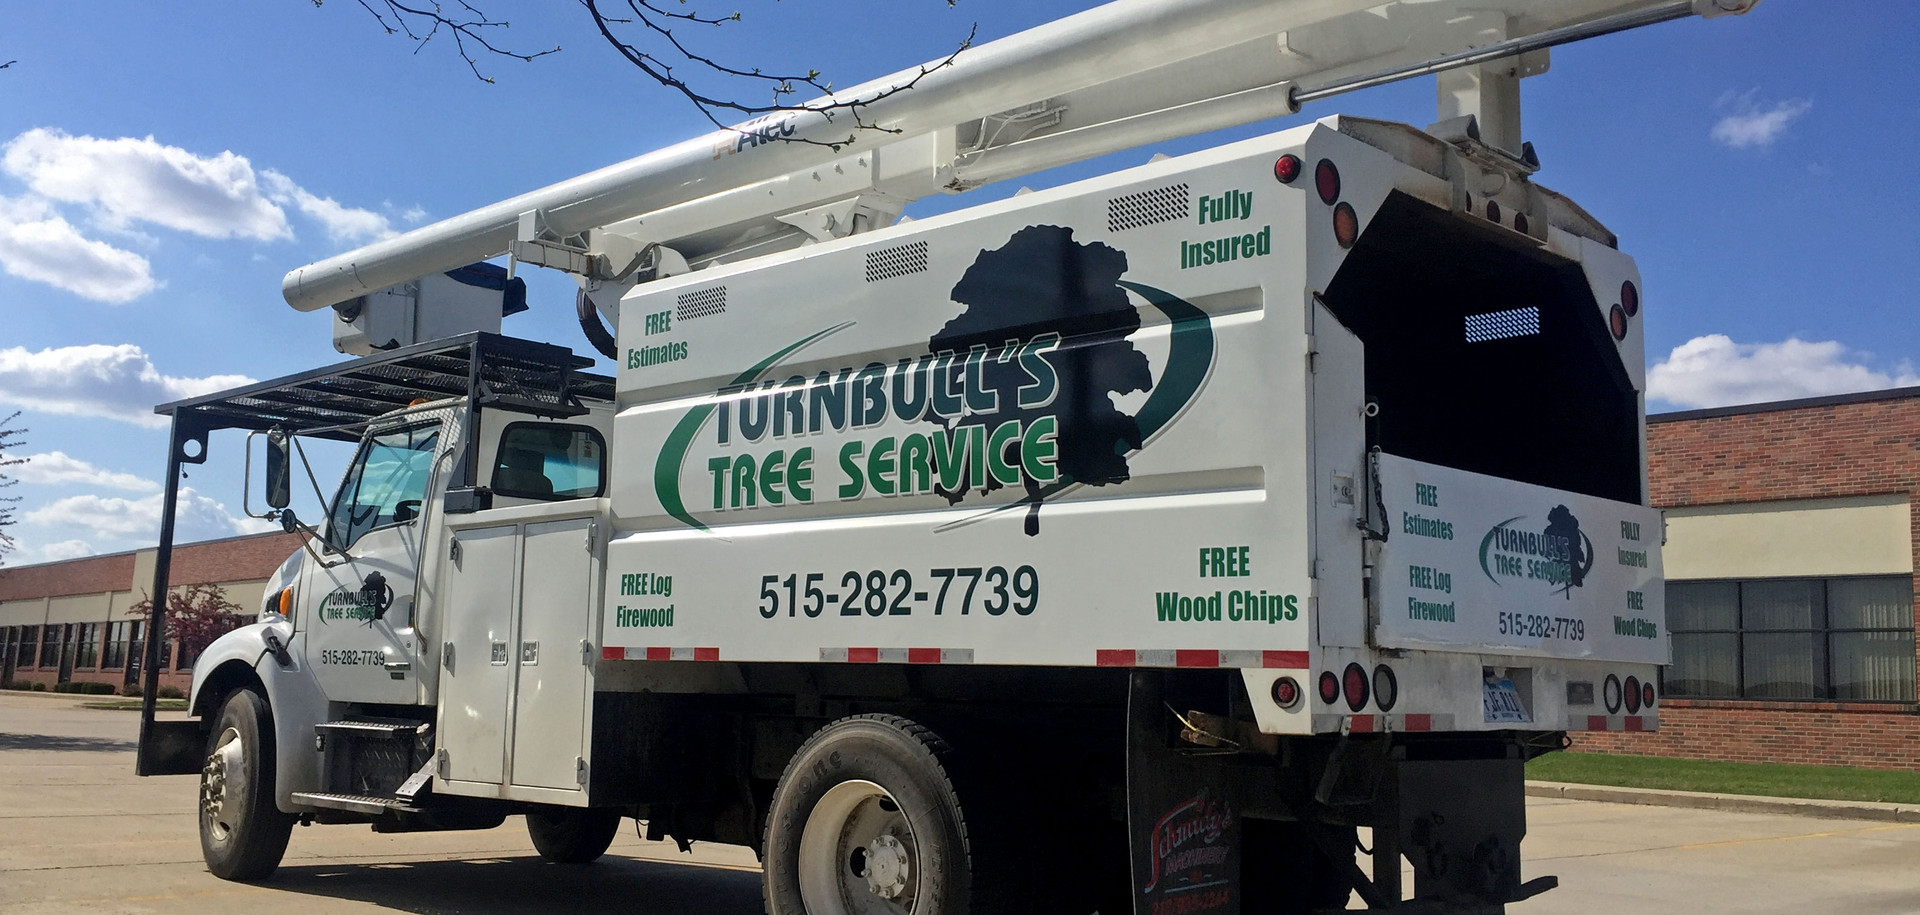 Turnbull Tree Service Truck